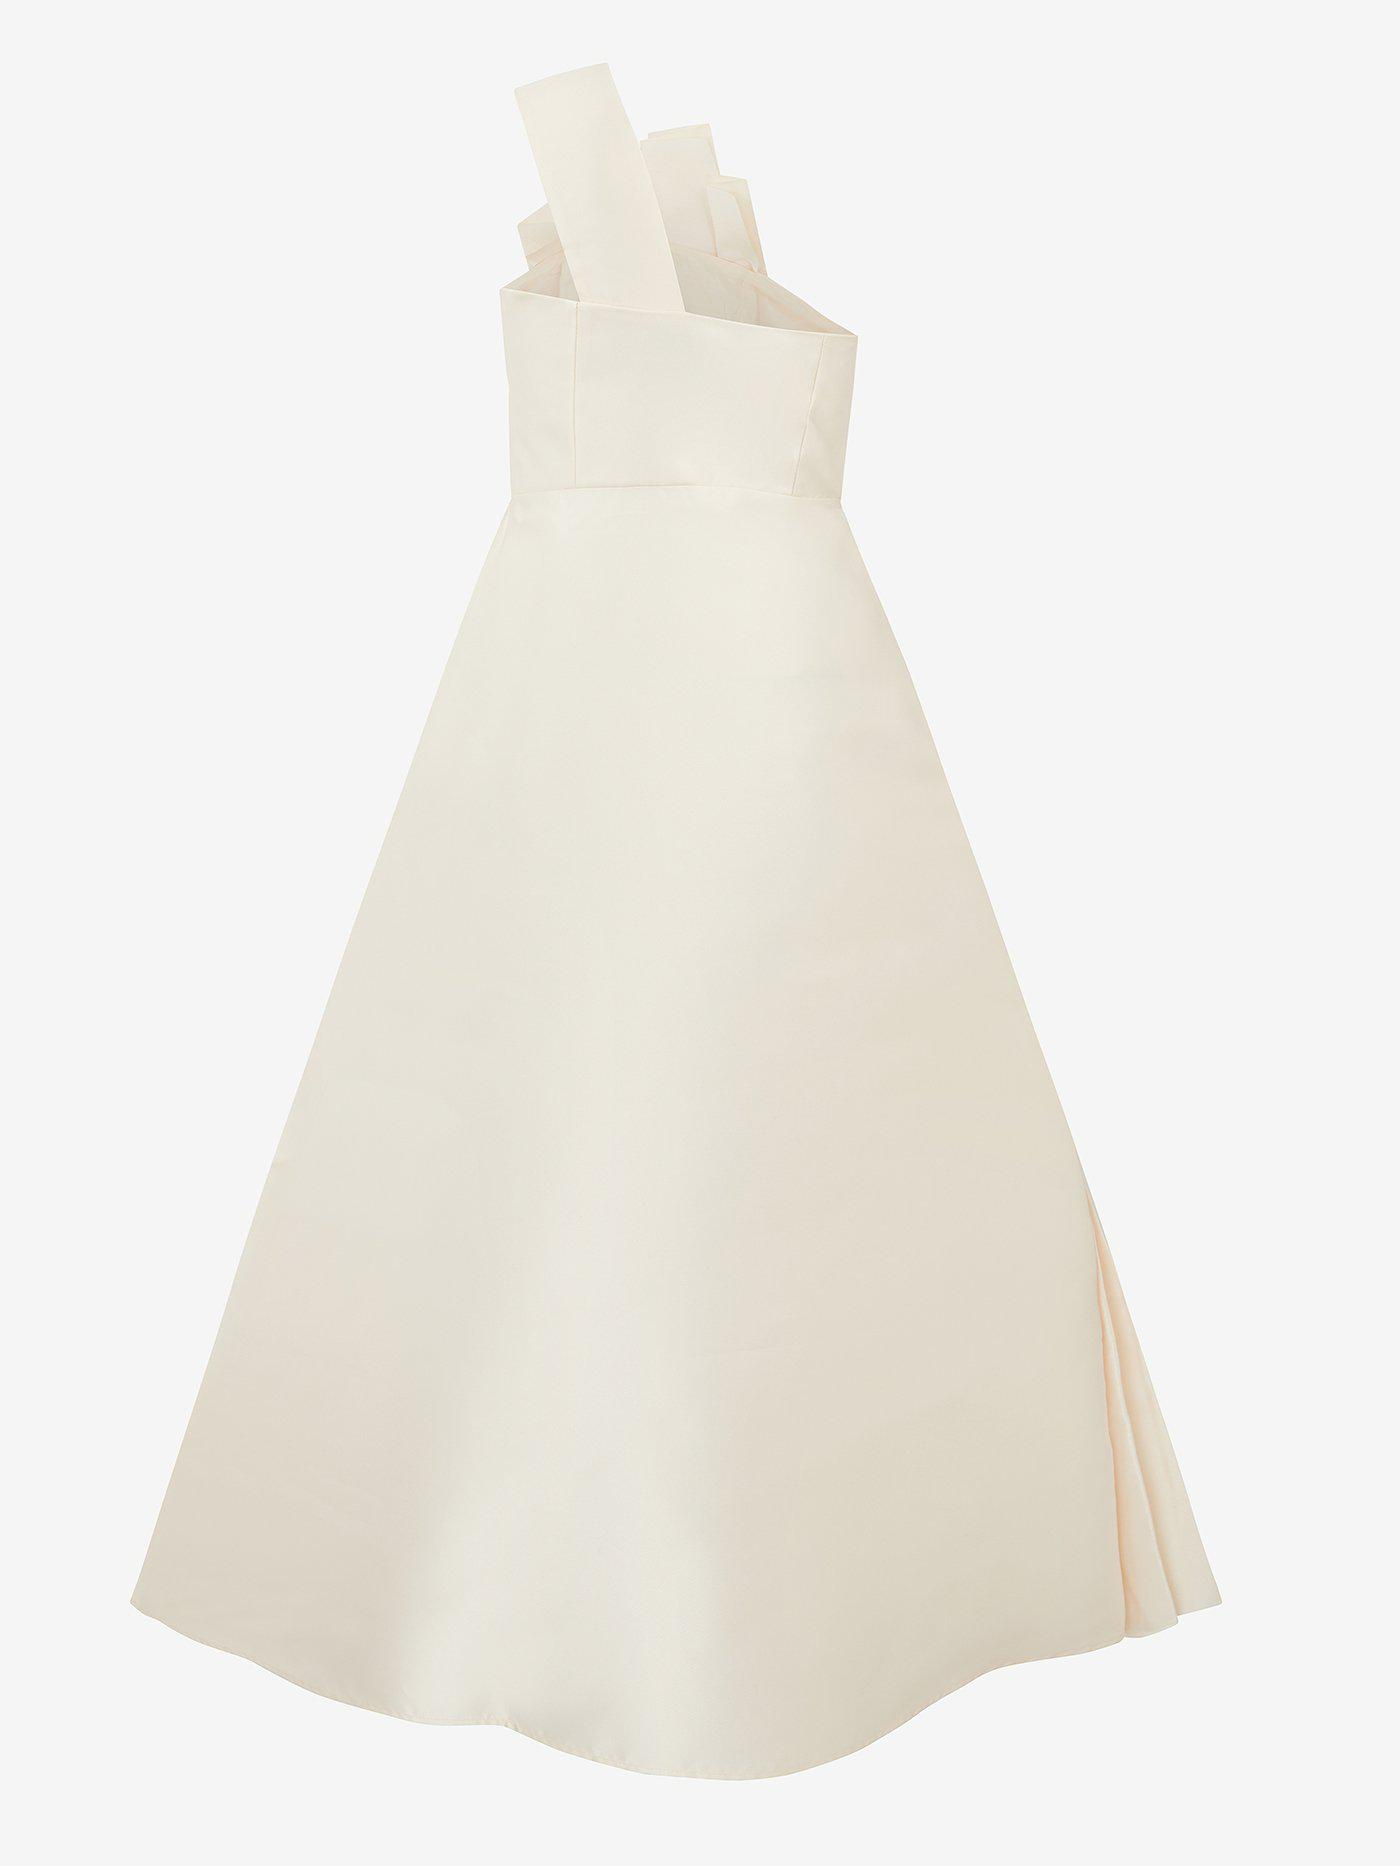 Architectural Pleated Dress (white satin) 1